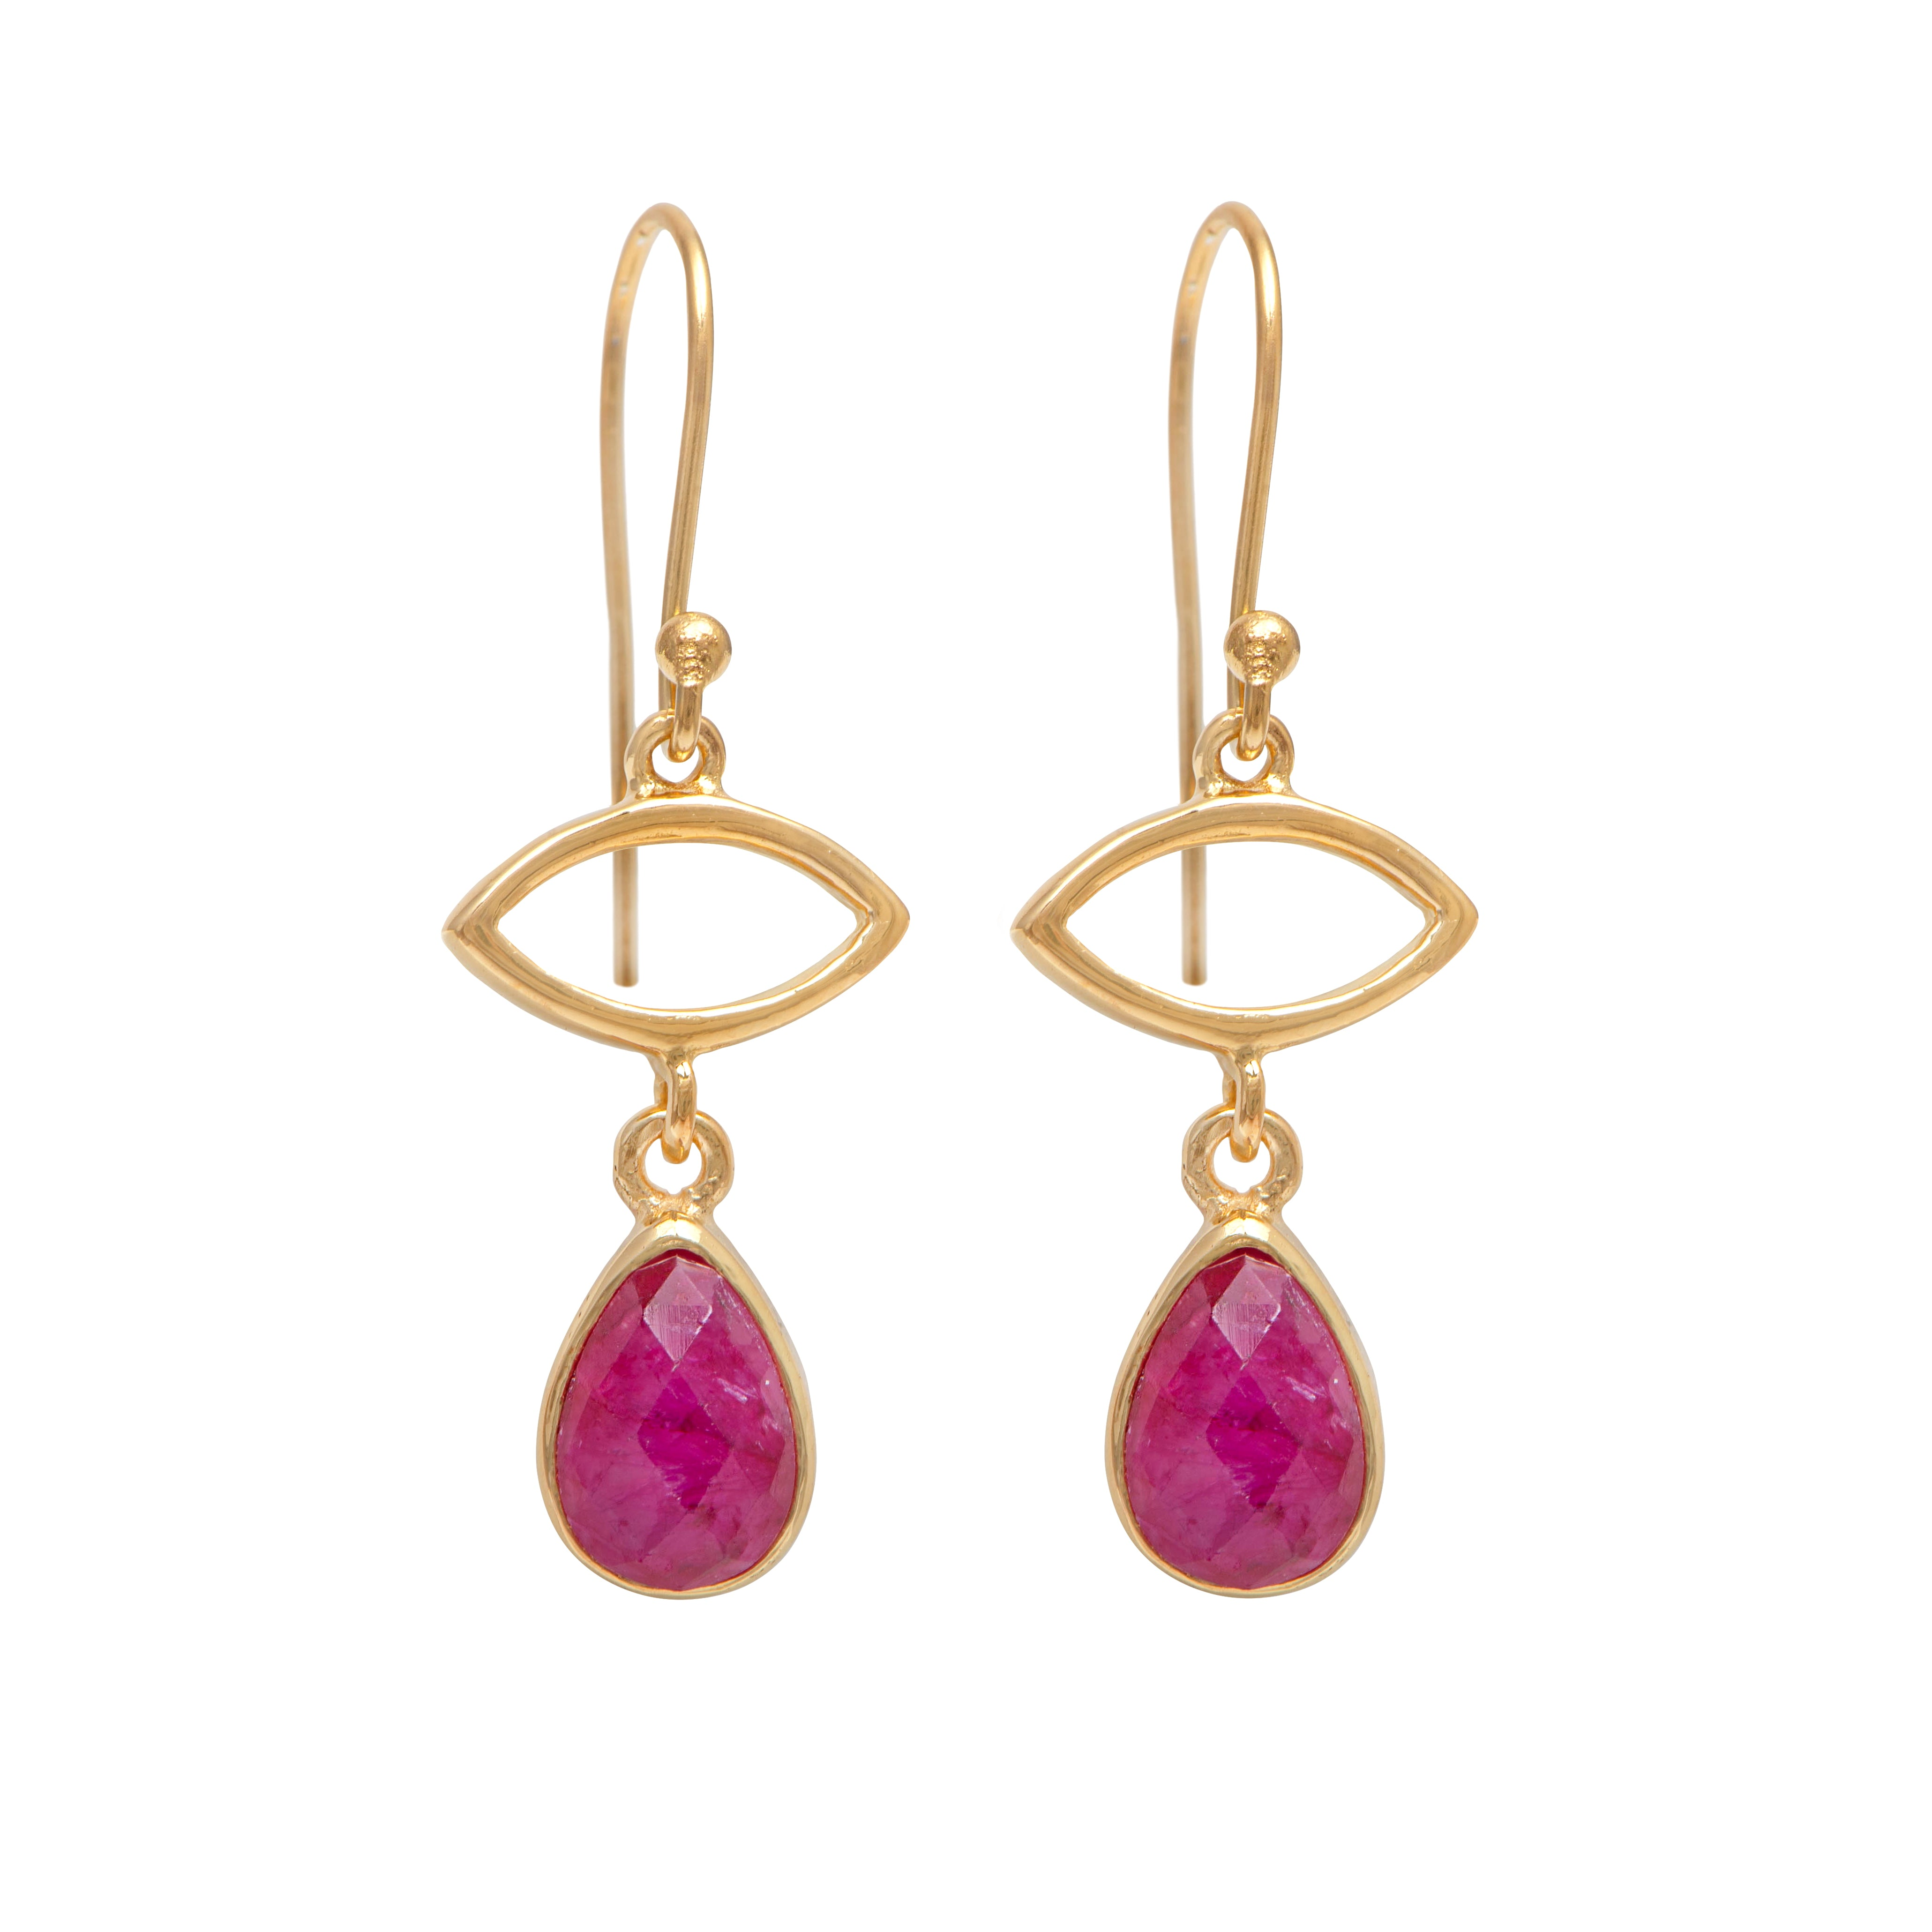 Gold Plated Drop Earrings with Ruby Quartz Gemstone